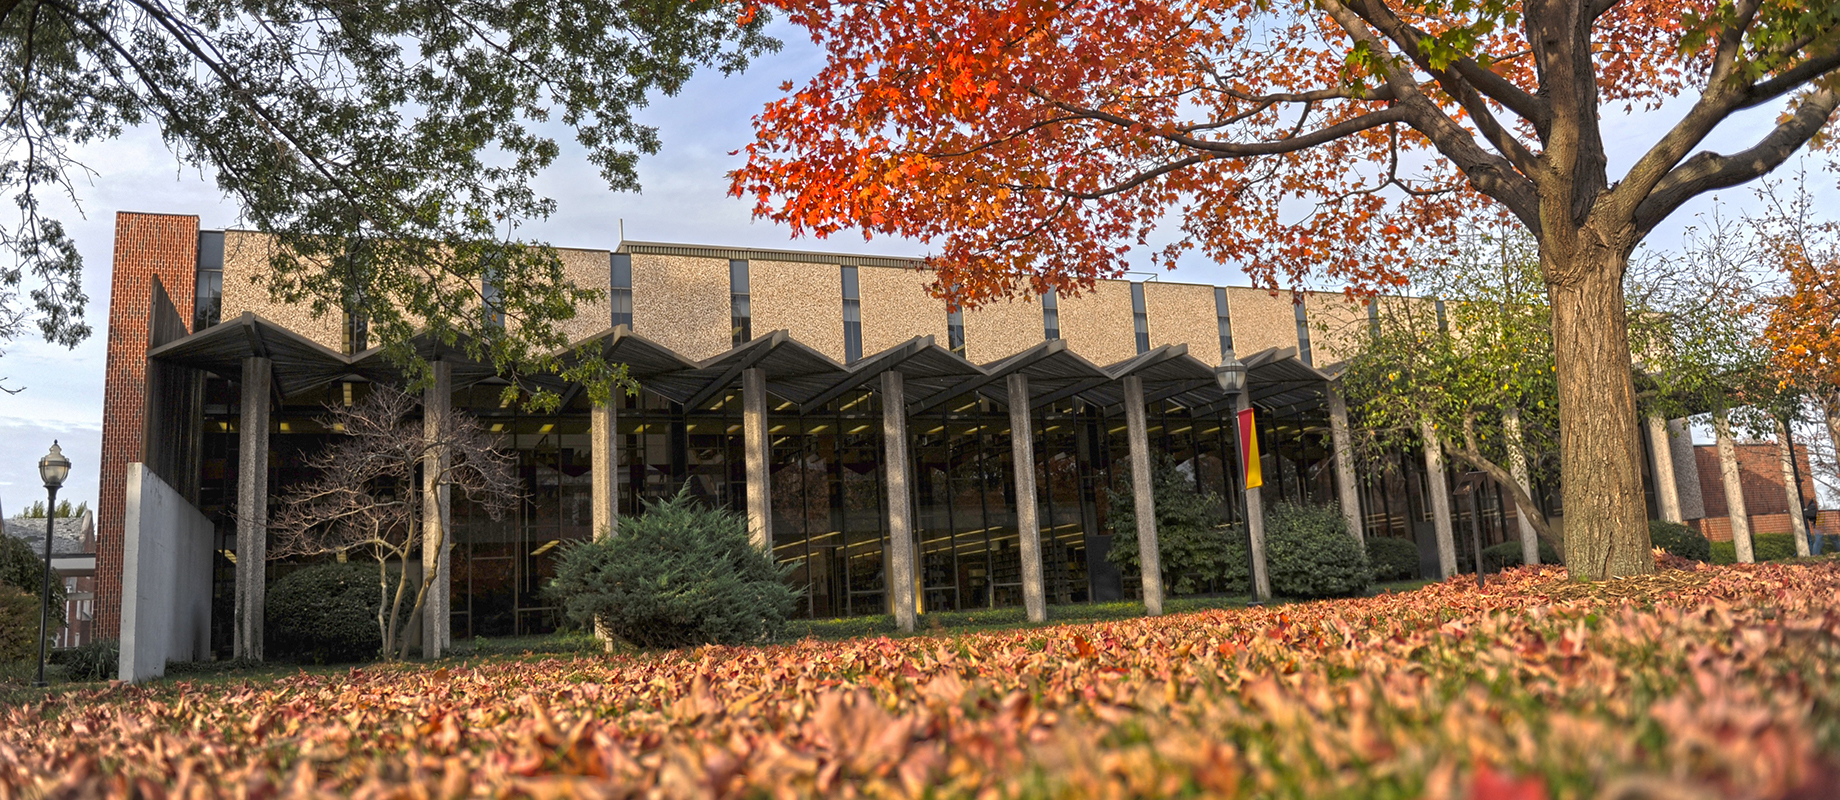 Dunn Library in the fall